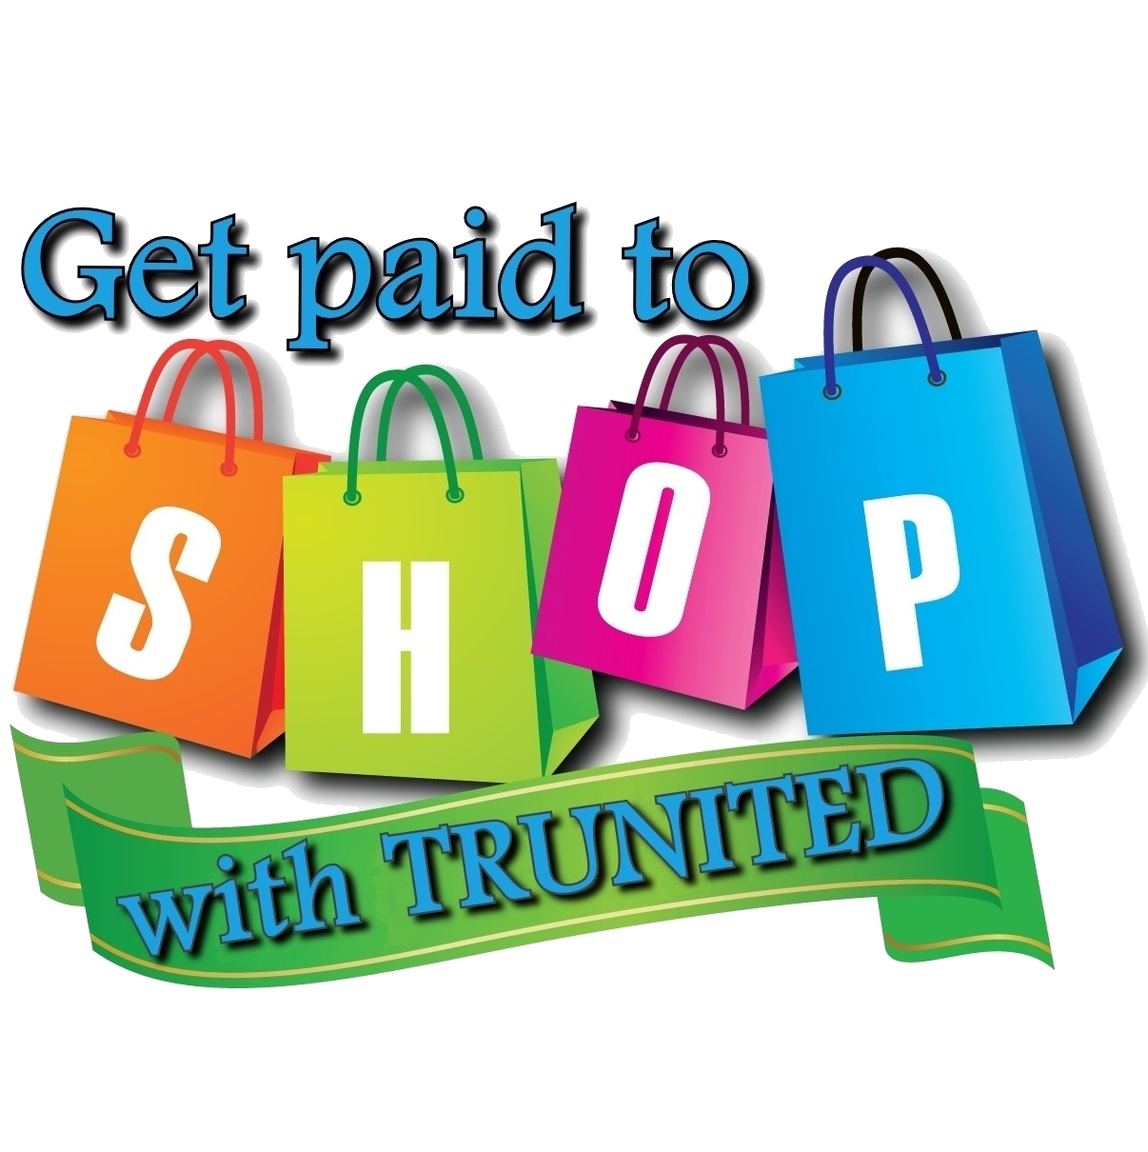 shopwithtrunited-trans